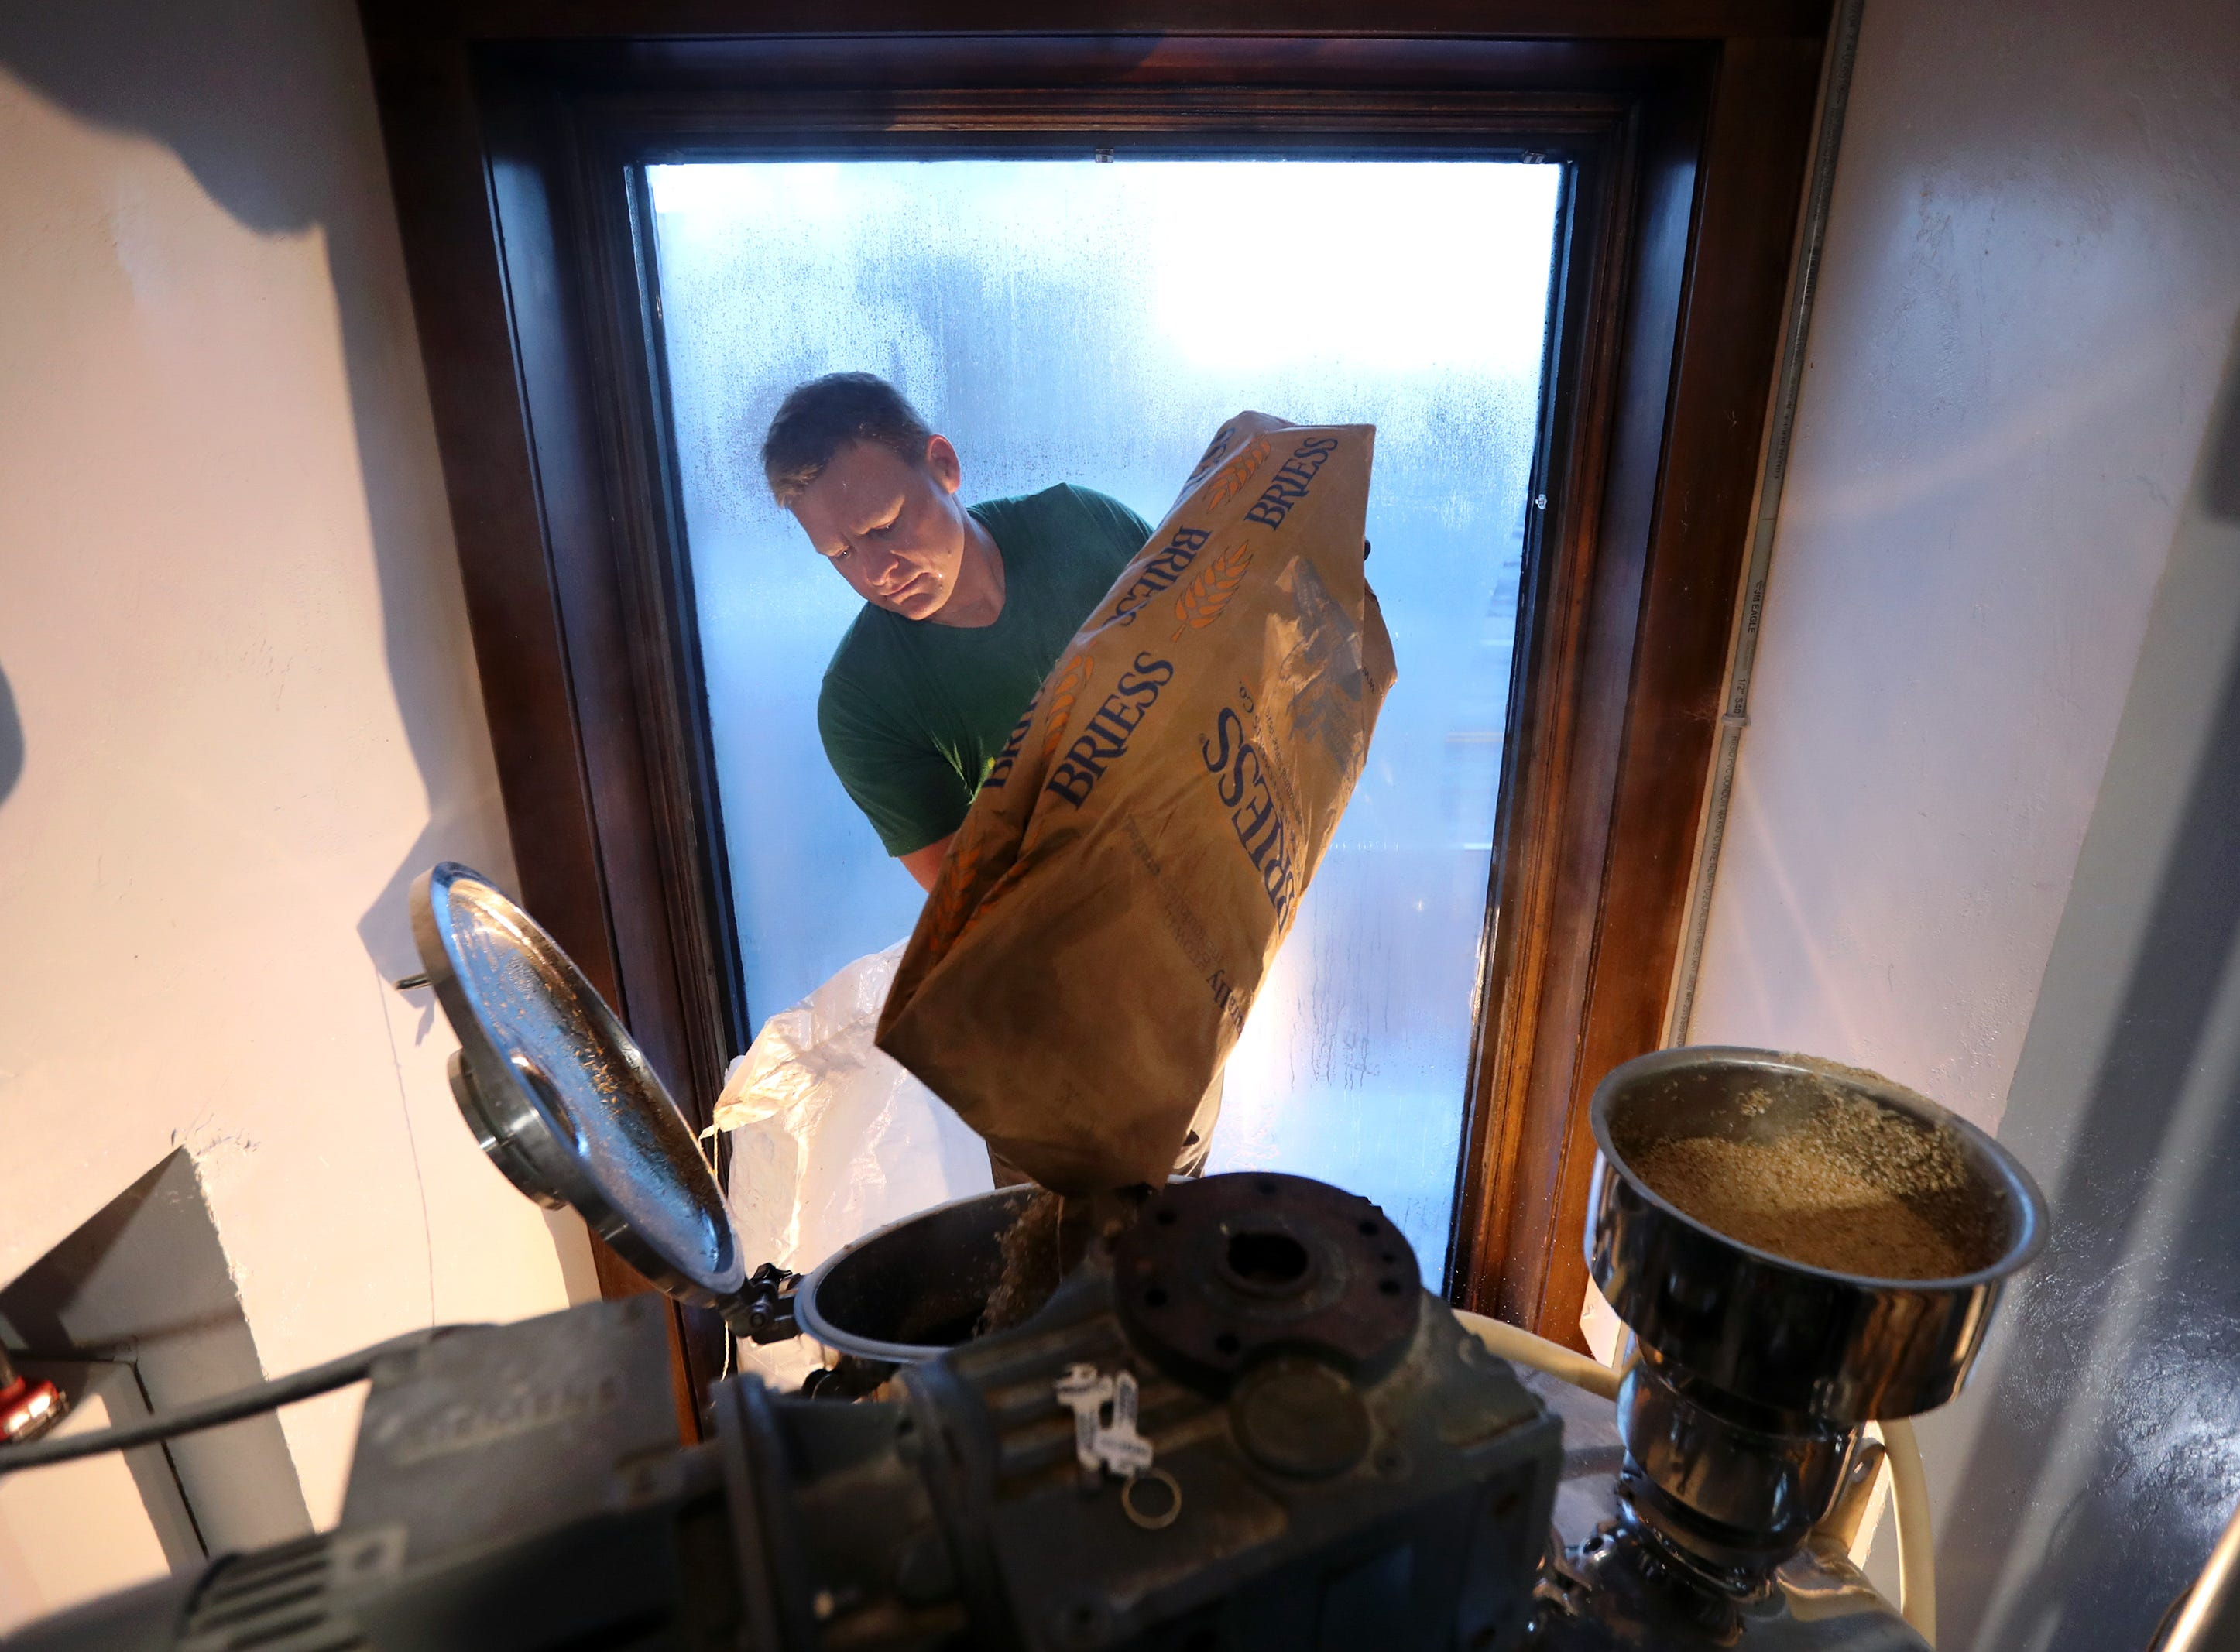 Alex Wenzel, owner and brewmaster at Lion's Tail Brewery, pours oat flakes while brewing their New England IPA Juice Cloud Thursday, Dec. 6, 2018, in Neenah, Wis.